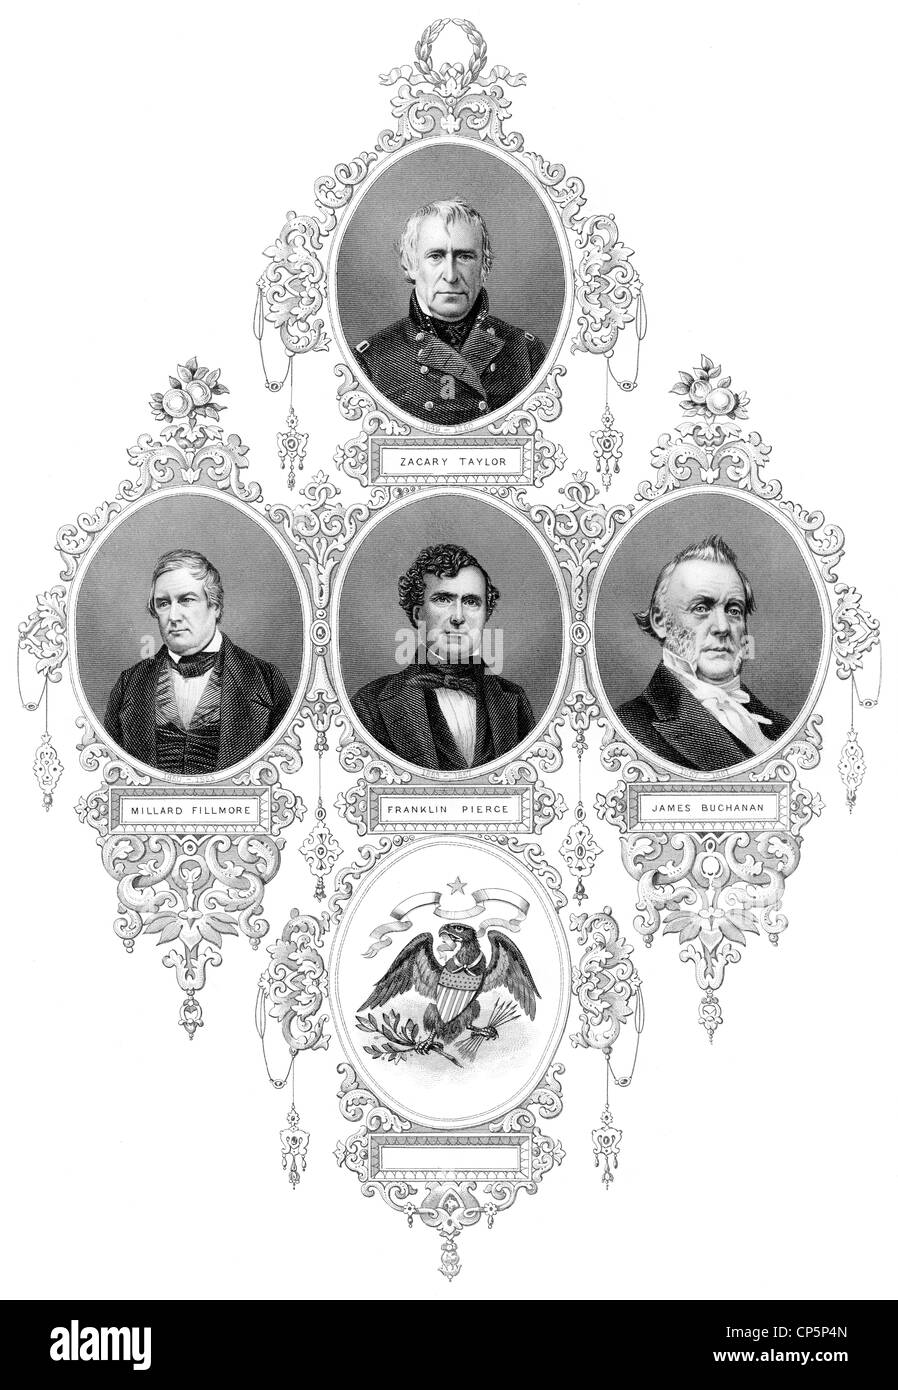 presidents of the United States of America, 1849-1861, Zachary Taylor, Millard Fillmore, Franklin Pierce, James - Stock Image